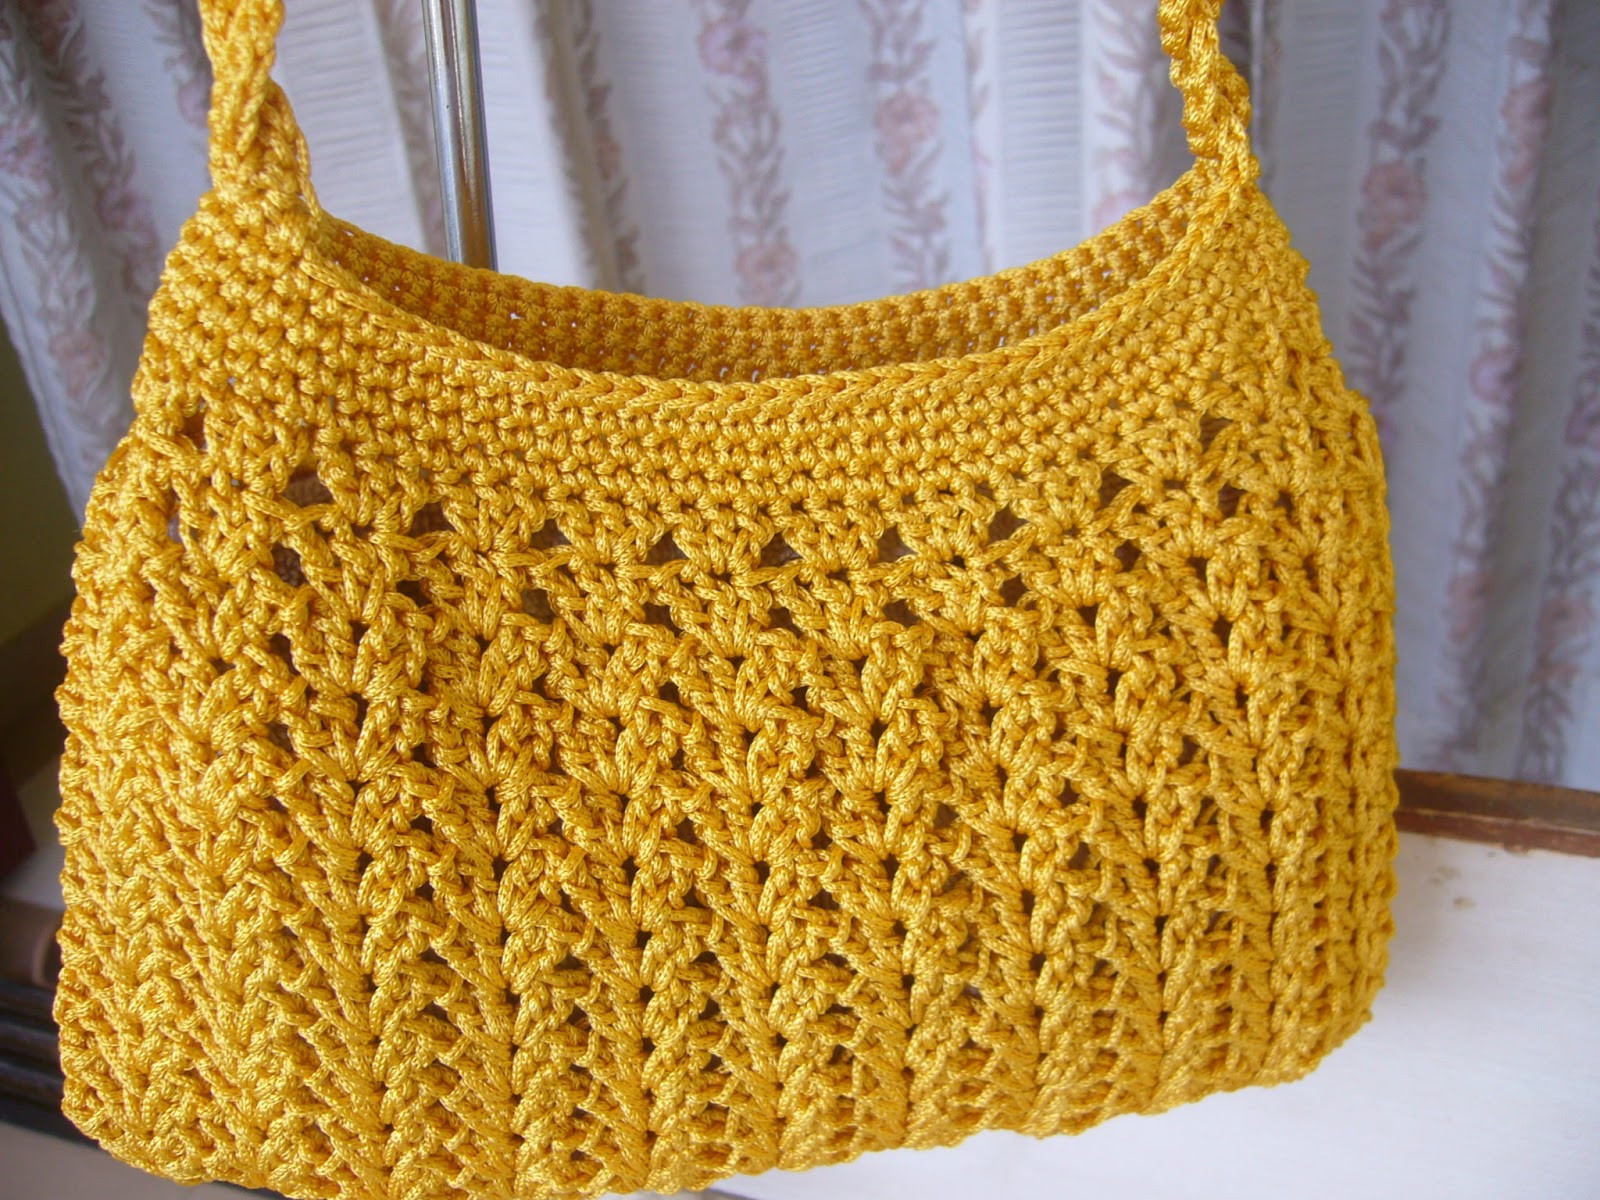 Crochet Purse Pattern Inspirational Crochetkari Golden Yellow Crochet Purse Of Adorable 44 Photos Crochet Purse Pattern